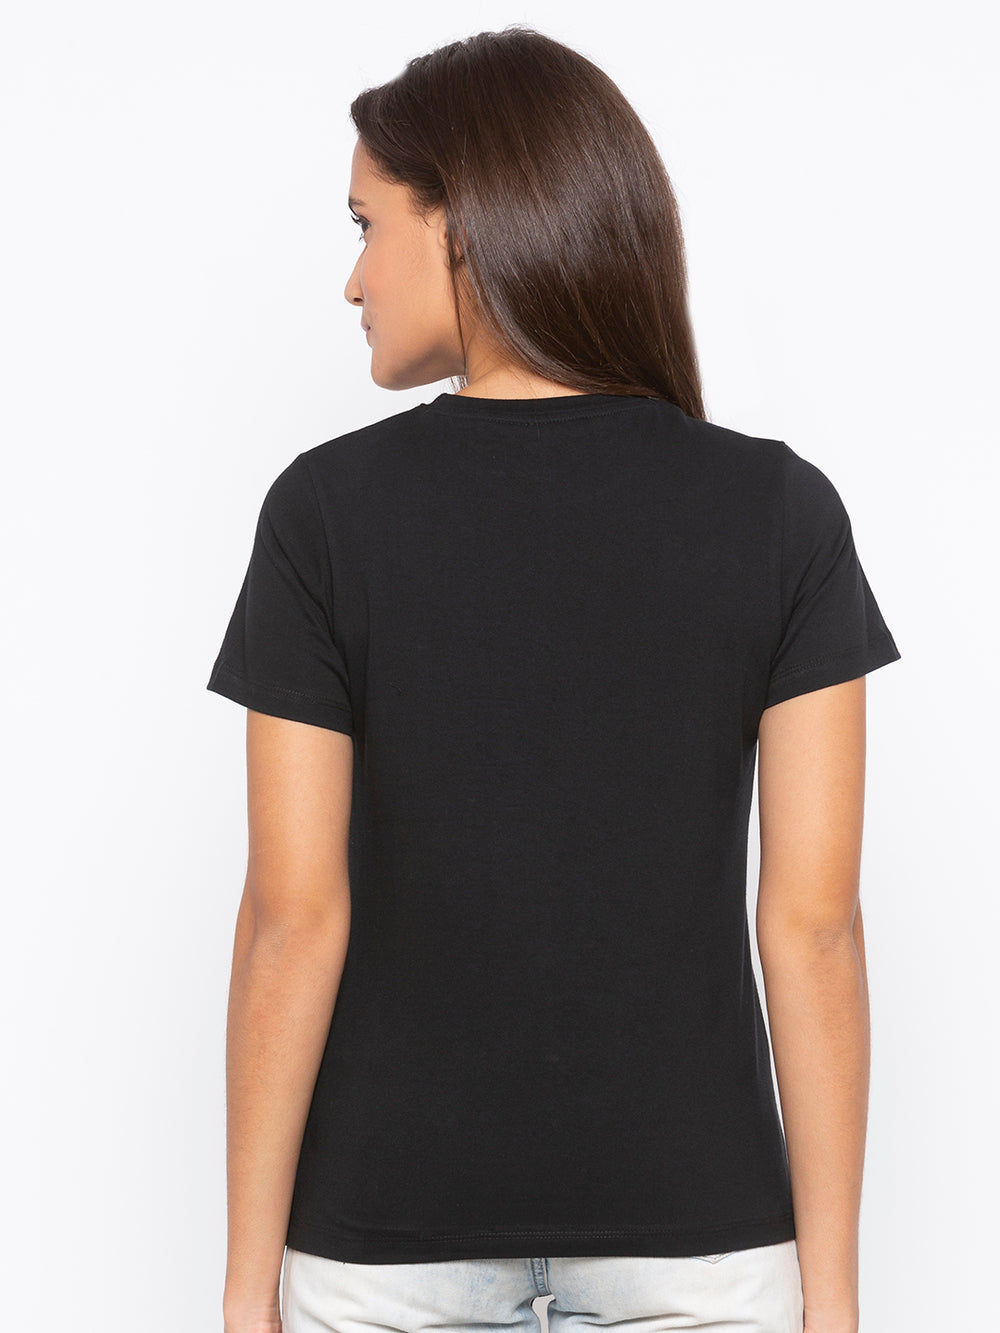 Disrupt Black Conquer Print Cotton T-shirt